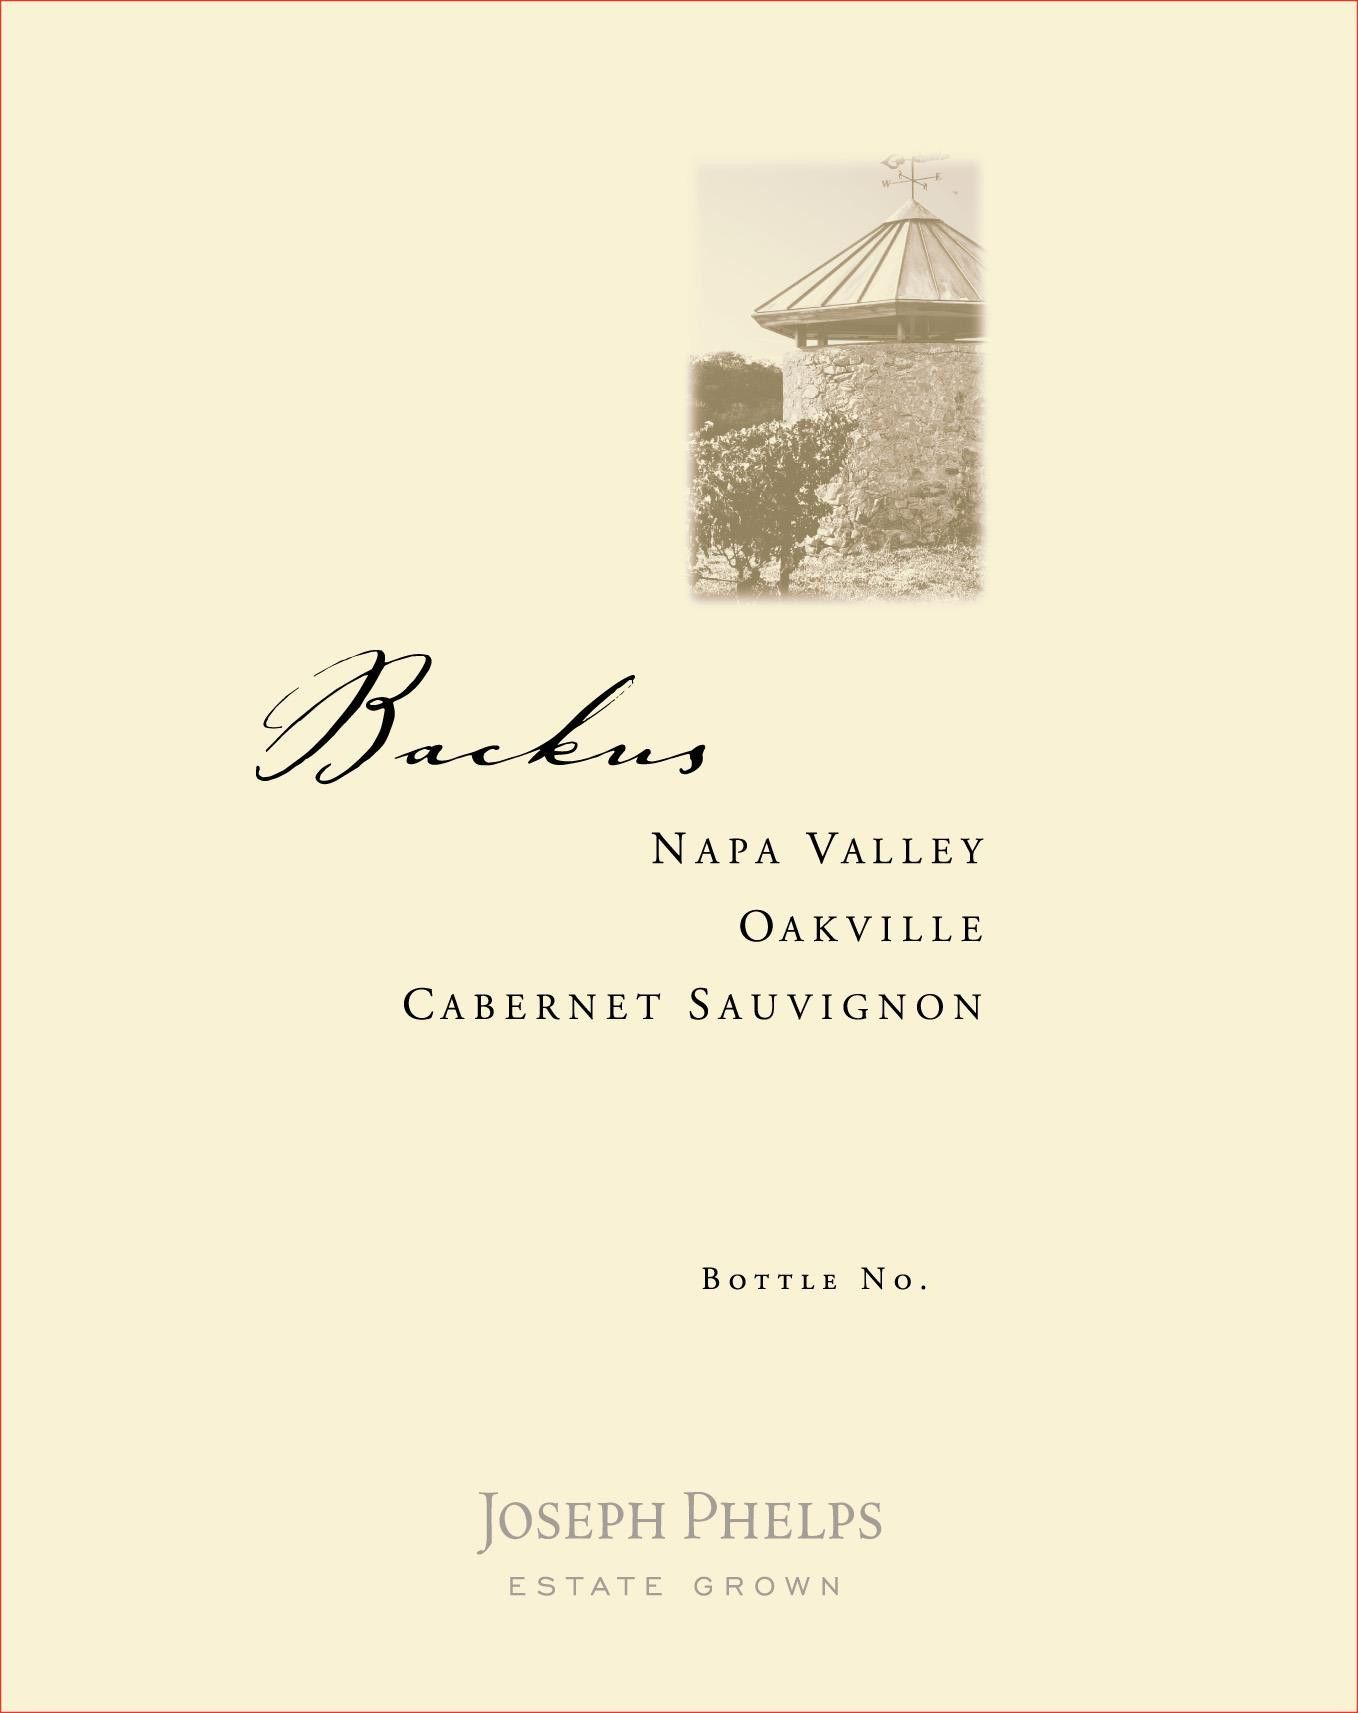 Joseph Phelps Backus Vineyard Cabernet Sauvignon 2001  Front Label